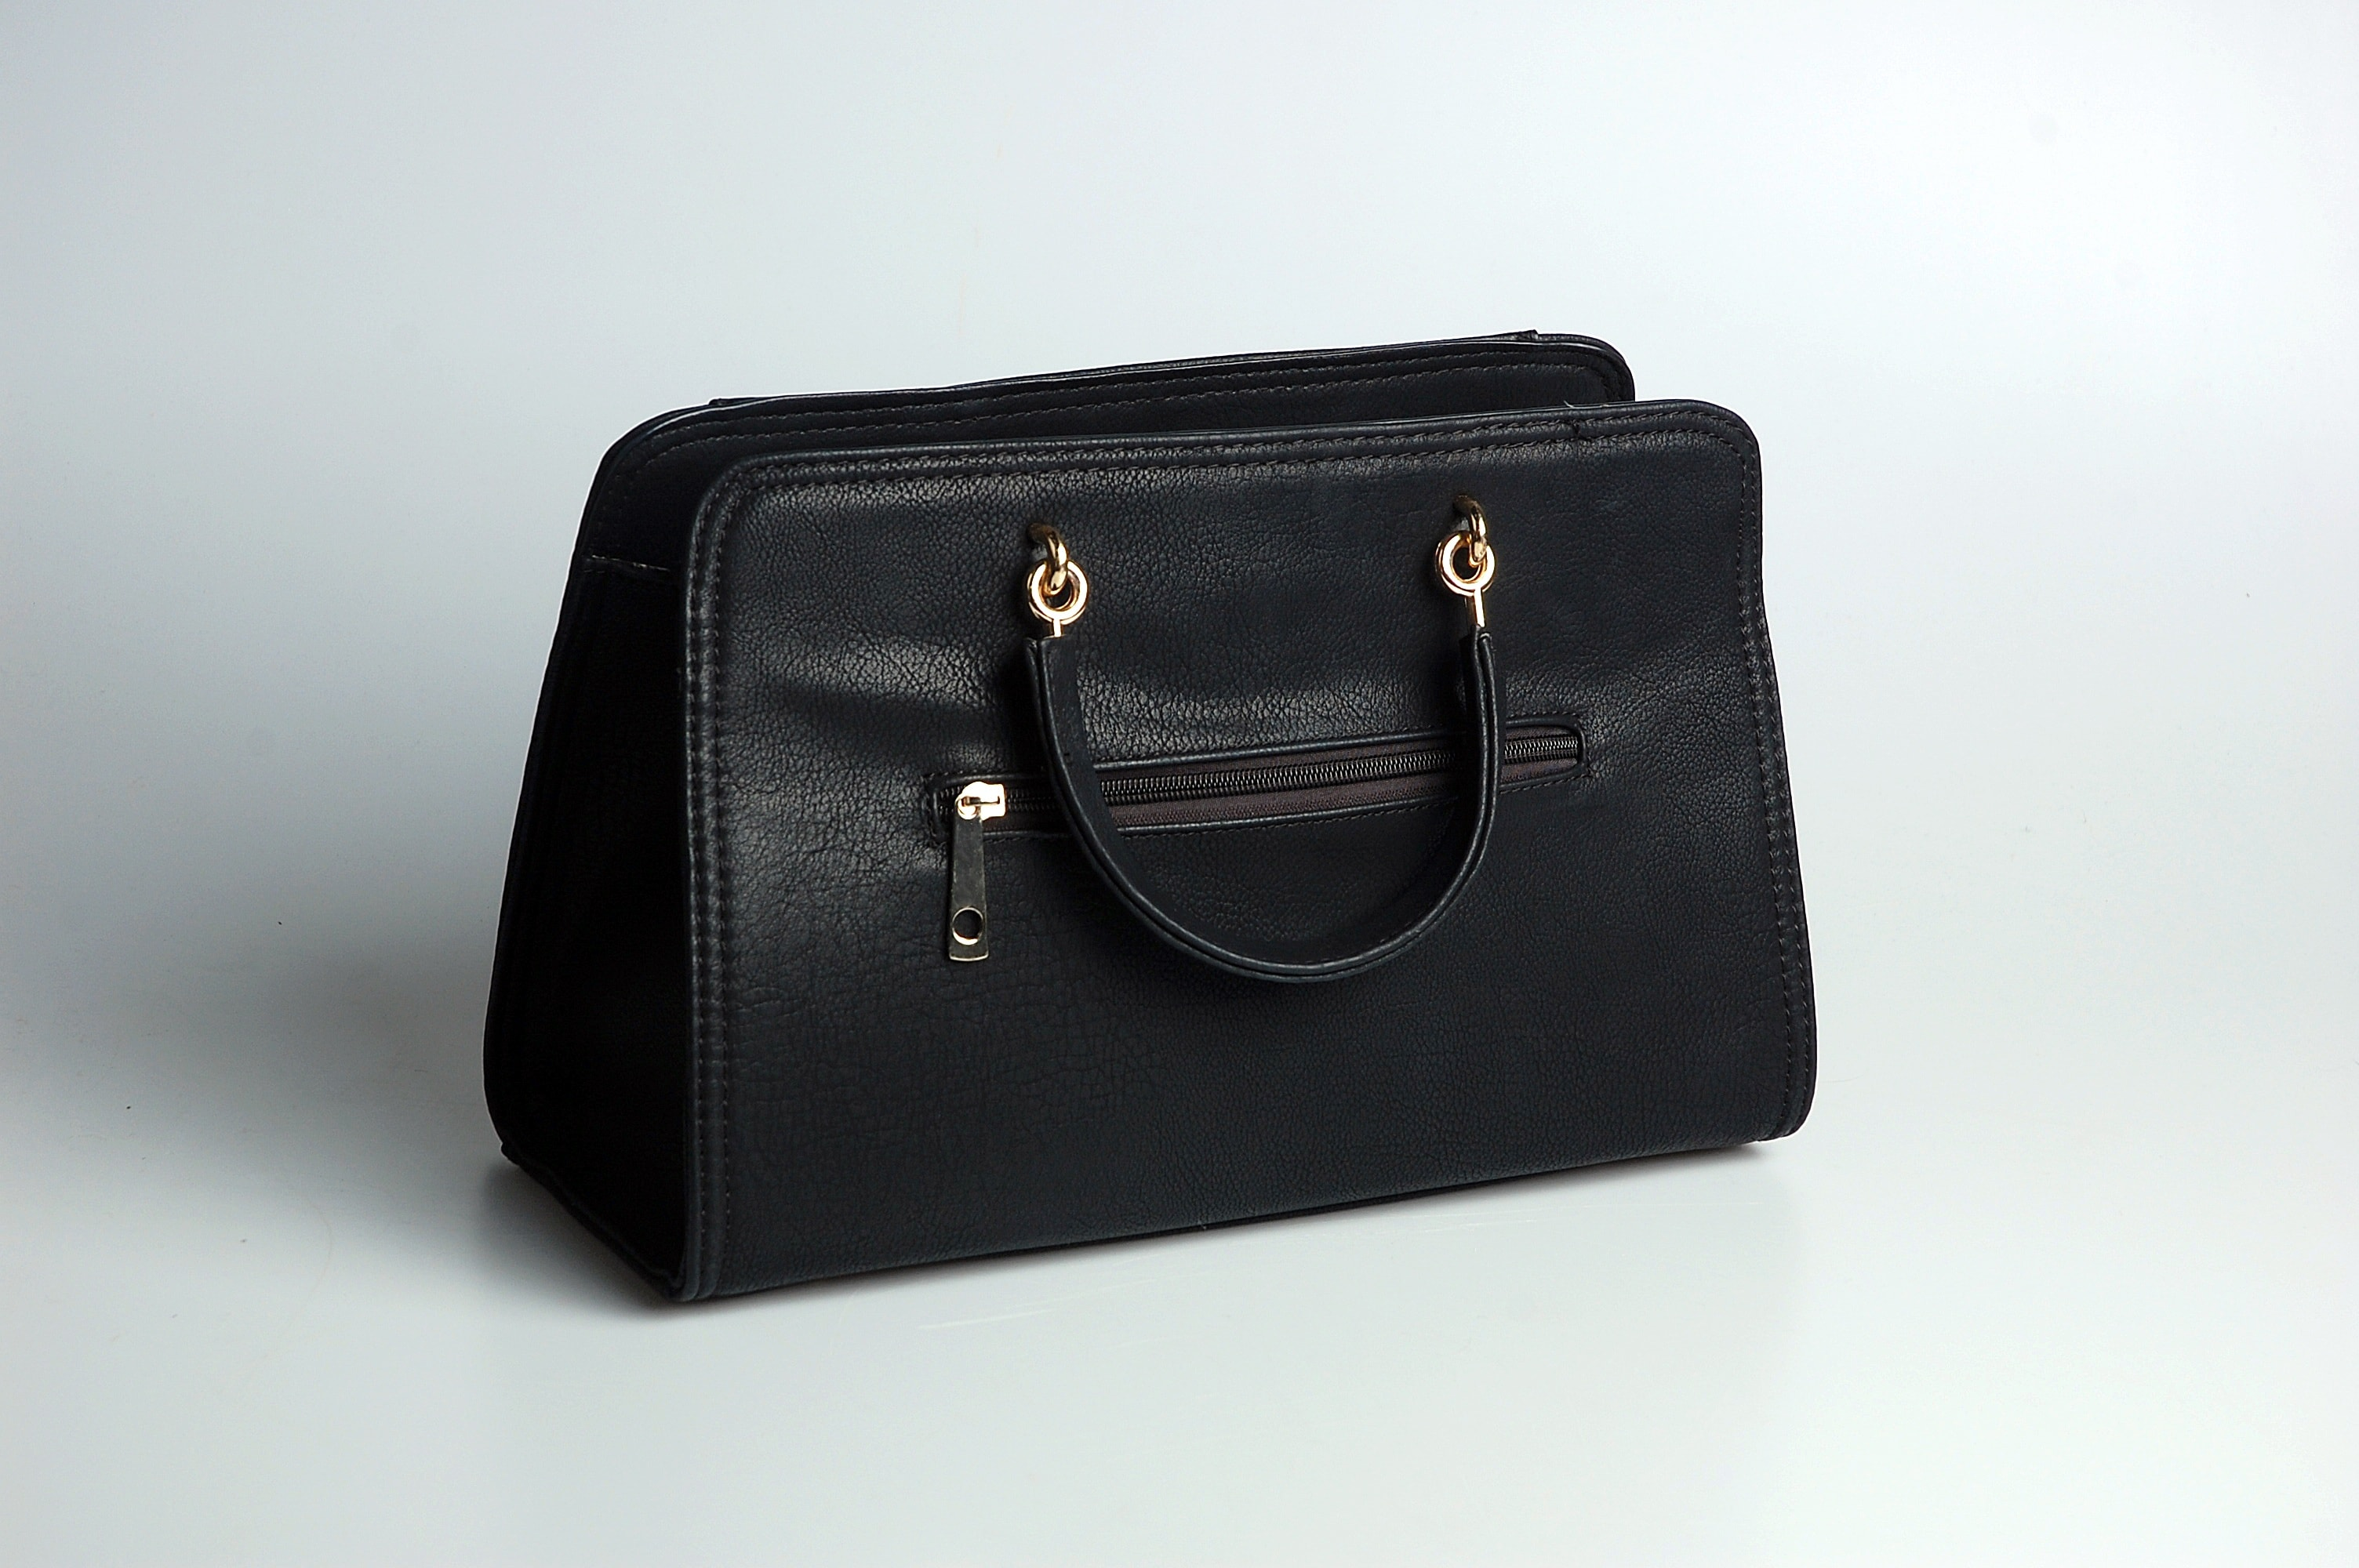 leather-studio-bag-black-handbag-wallet-761723-pxhere.com